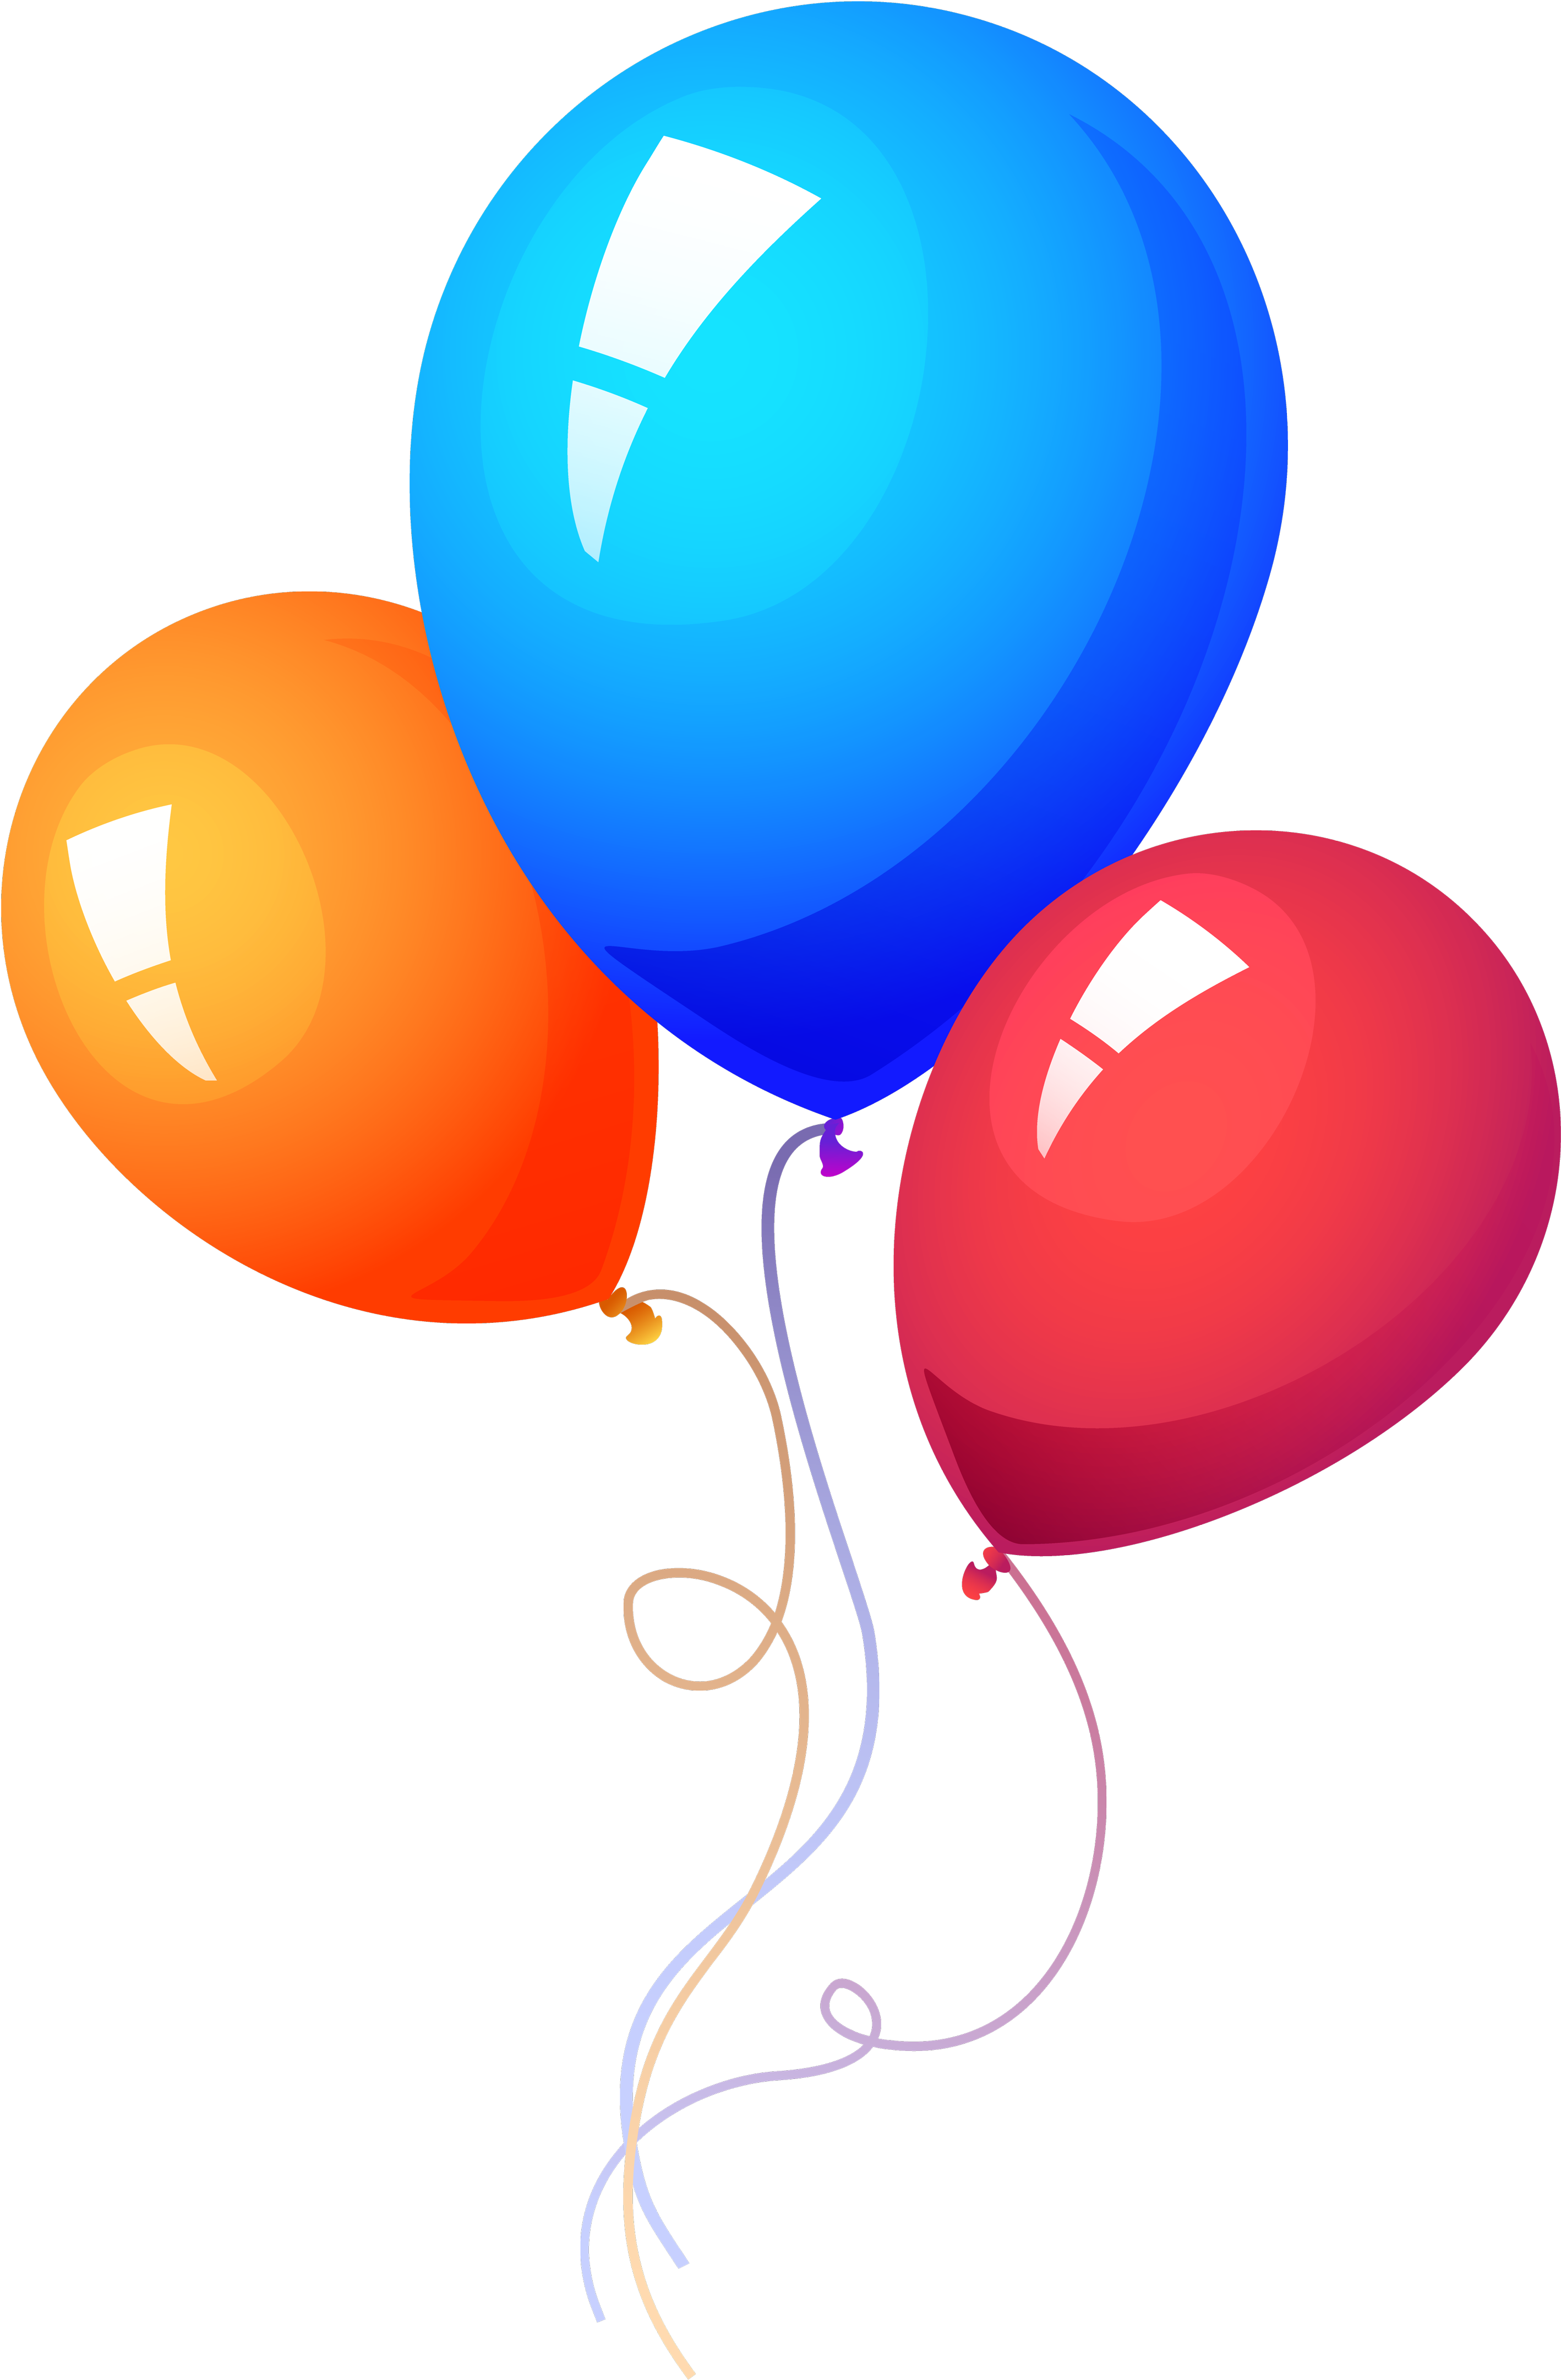 Balloon Free Png Transparent Background Images Free - Party Balloons Png (3350x4606)